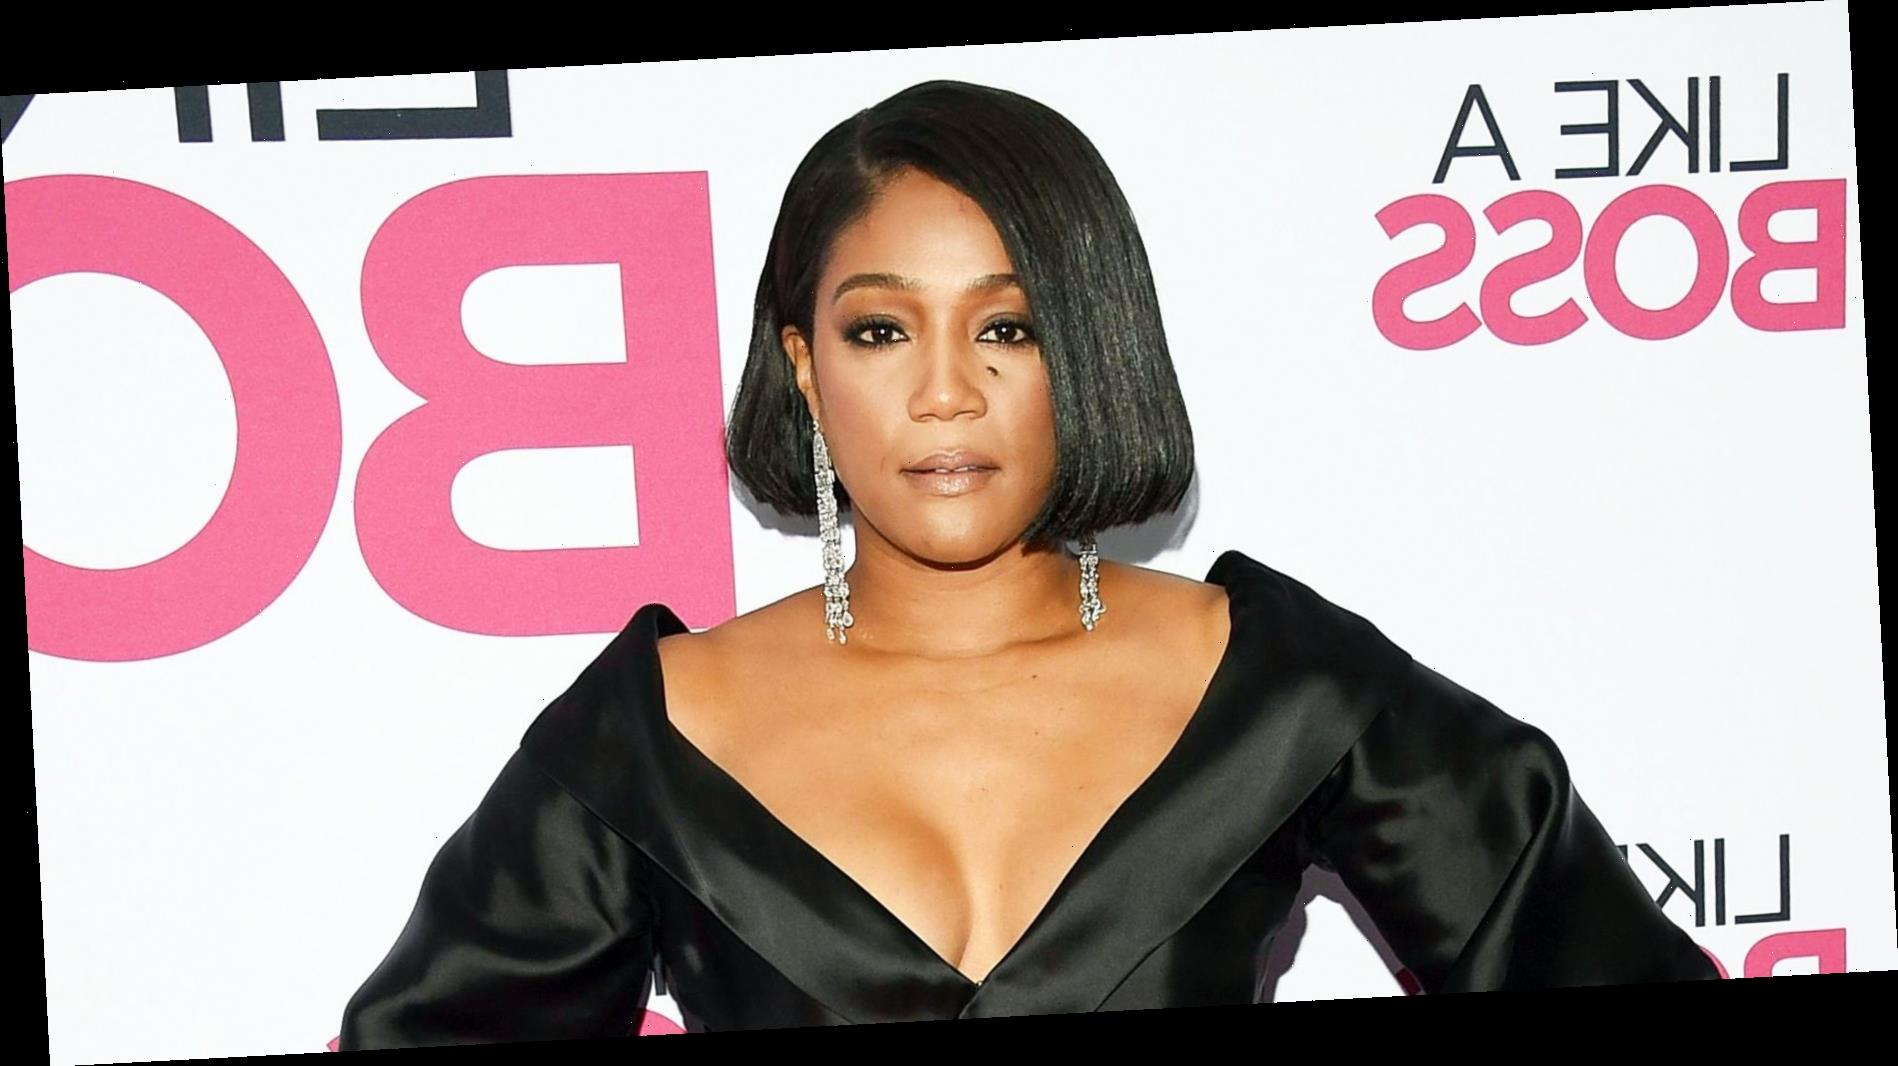 Grammys Chief Apologizes to Tiffany Haddish Over Pre-Show Payment Issues